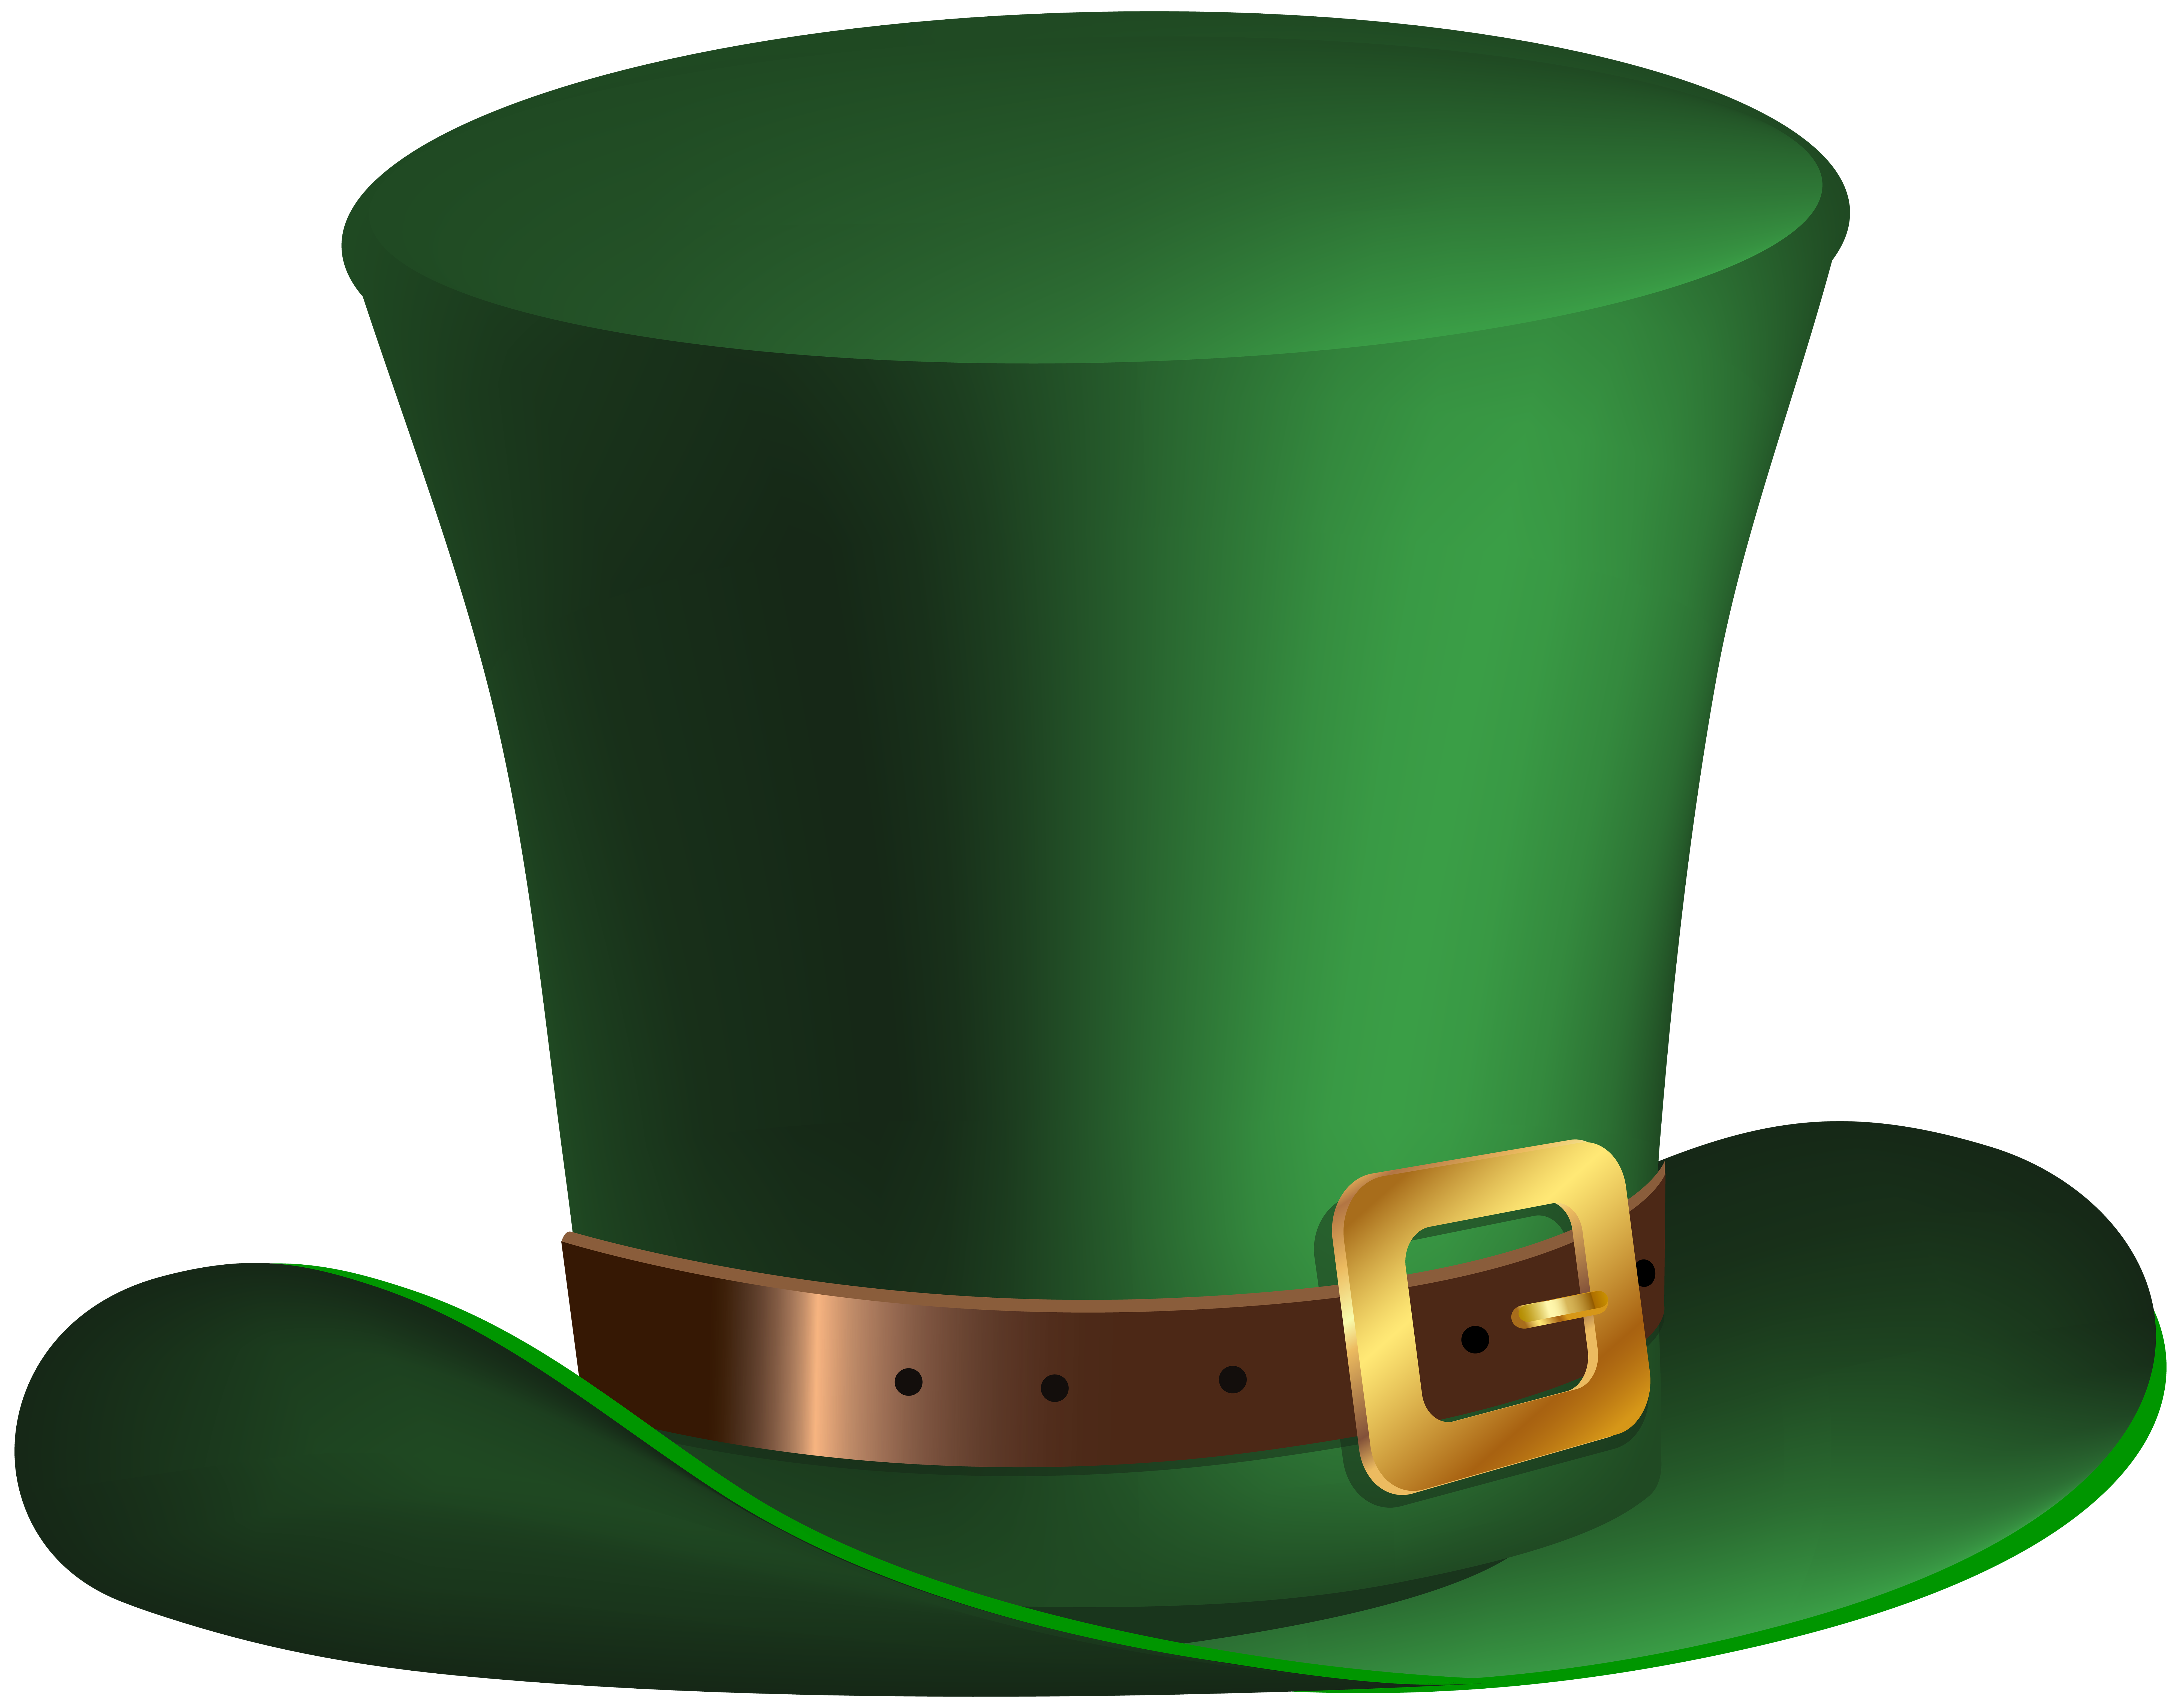 transparent library  collection of high. Leprechaun hat clipart black and white